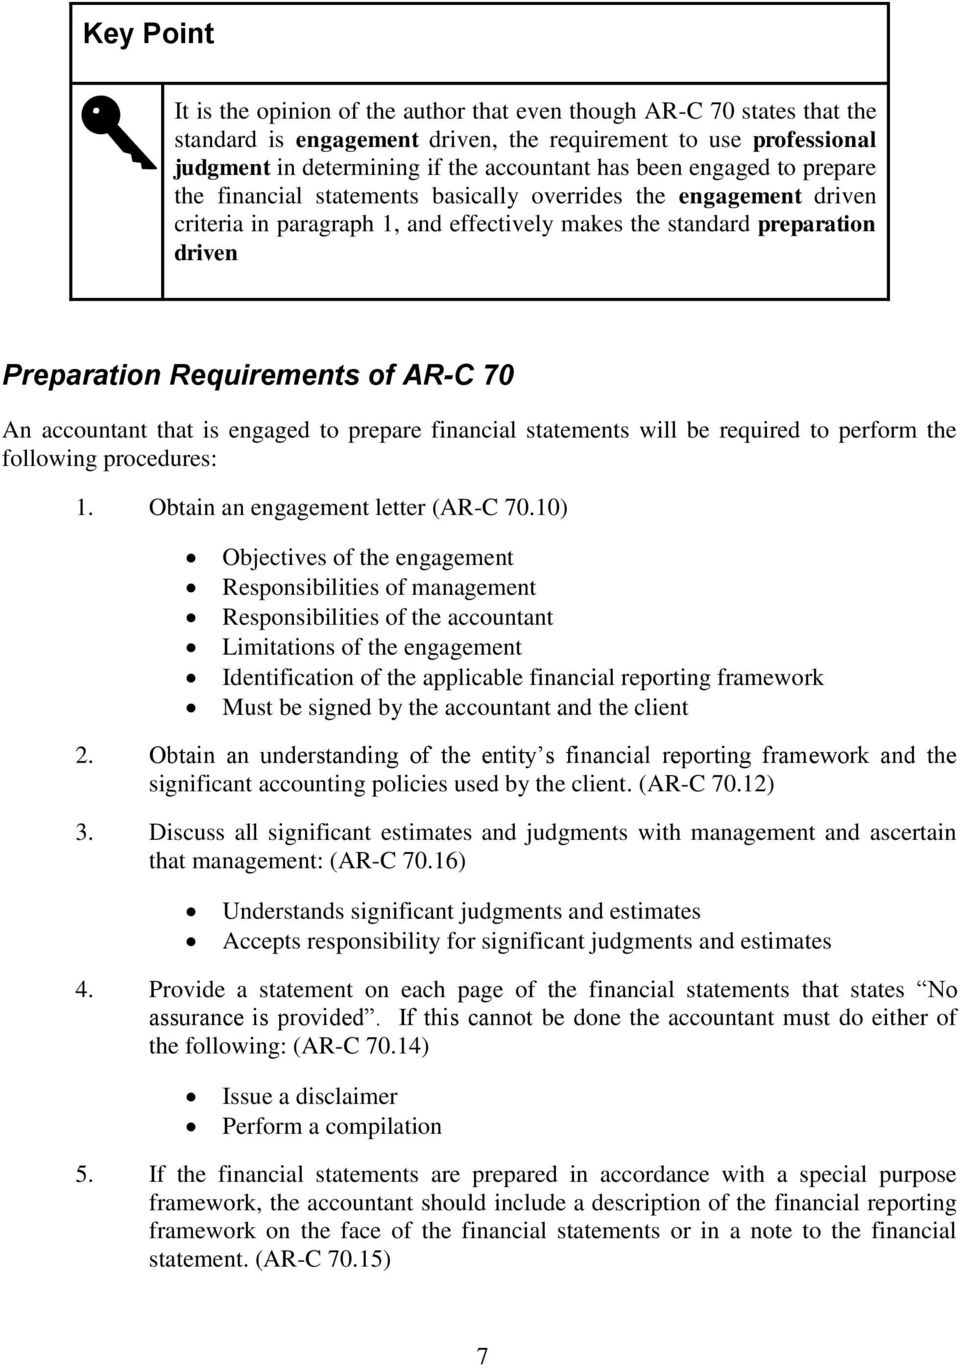 AR-C 70 An accountant that is engaged to prepare financial statements will be required to perform the following procedures: 1. Obtain an engagement letter (AR-C 70.